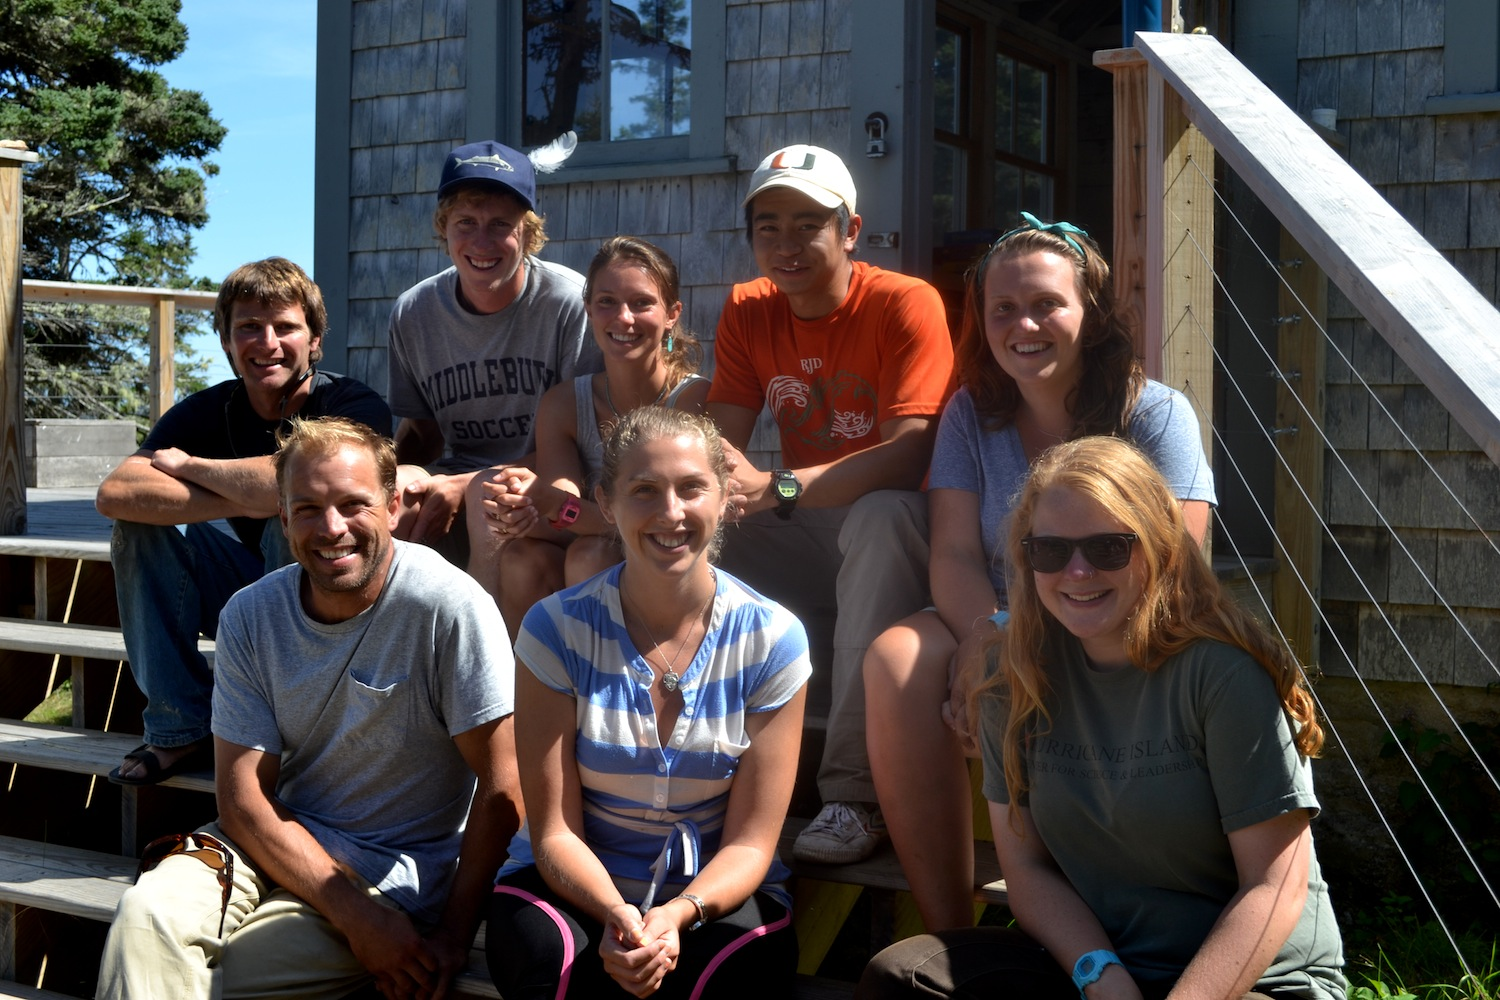 2014 Island Staff:  L-R Back:  Sam Hallowell, Oakley Jackson, Josie Gates, Collin Li, Chloe Tremper ;  L-R Front:  Ben Hoops, Alyssa Hall, Alice Anderson,  Not Pictured- Cait Cleaver, Emily Peckham, Barney Hallowell